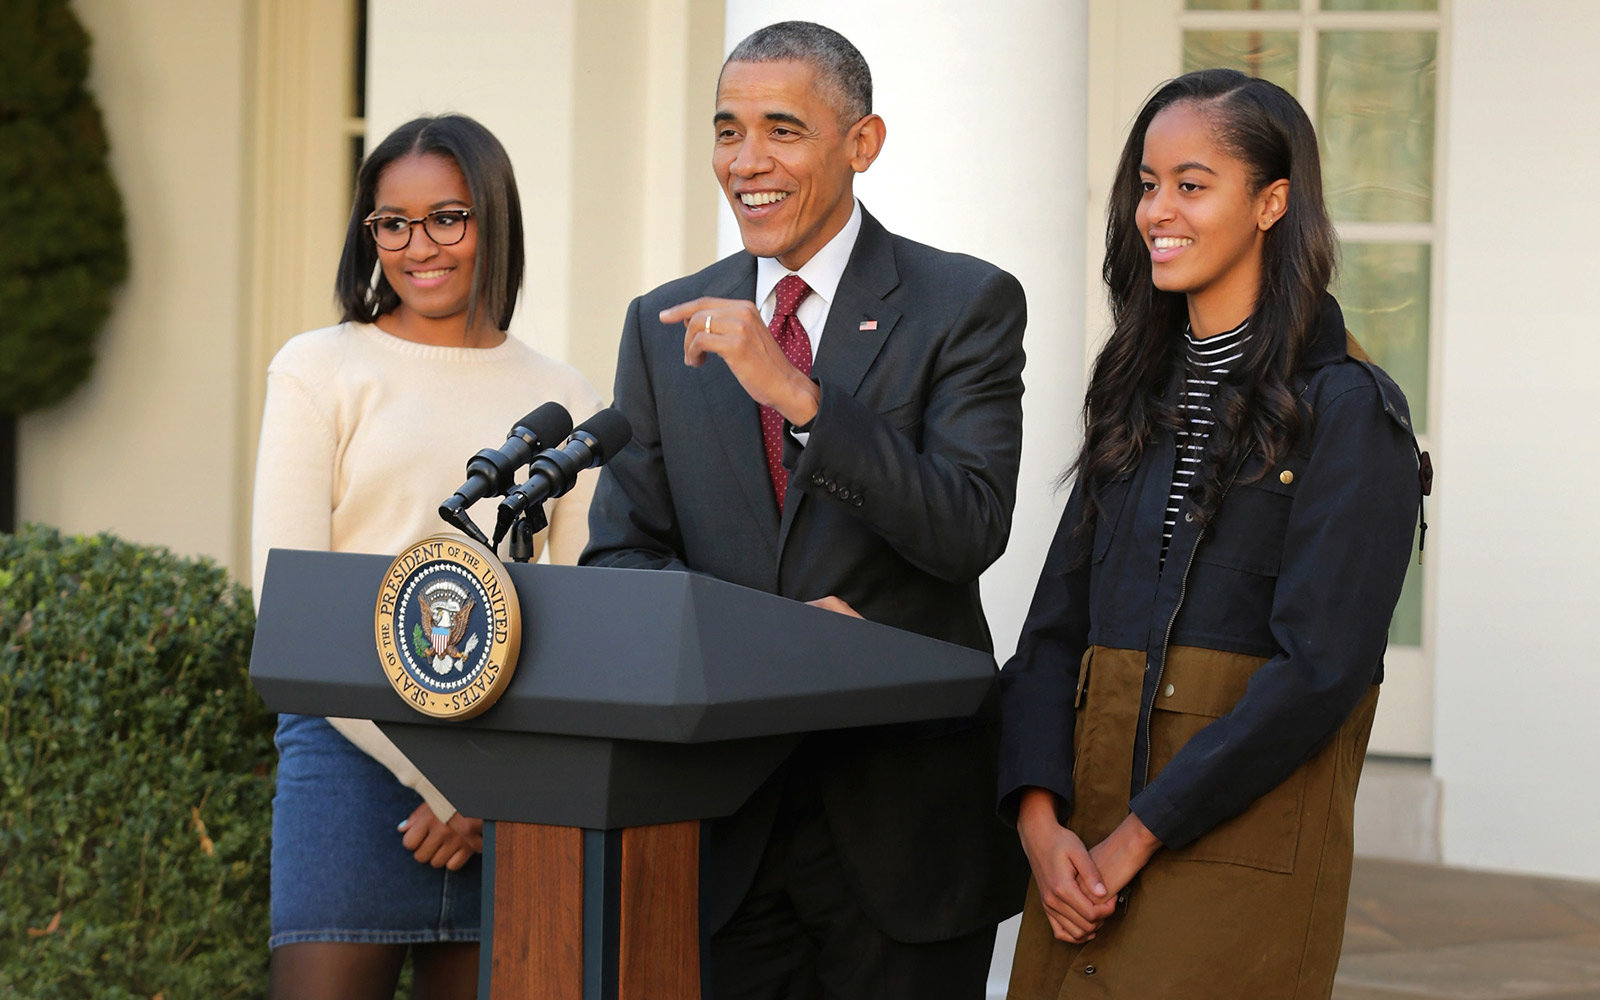 President Obama Imitating His Daughters on Their Phones Confirms That He's the Ultimate Dad